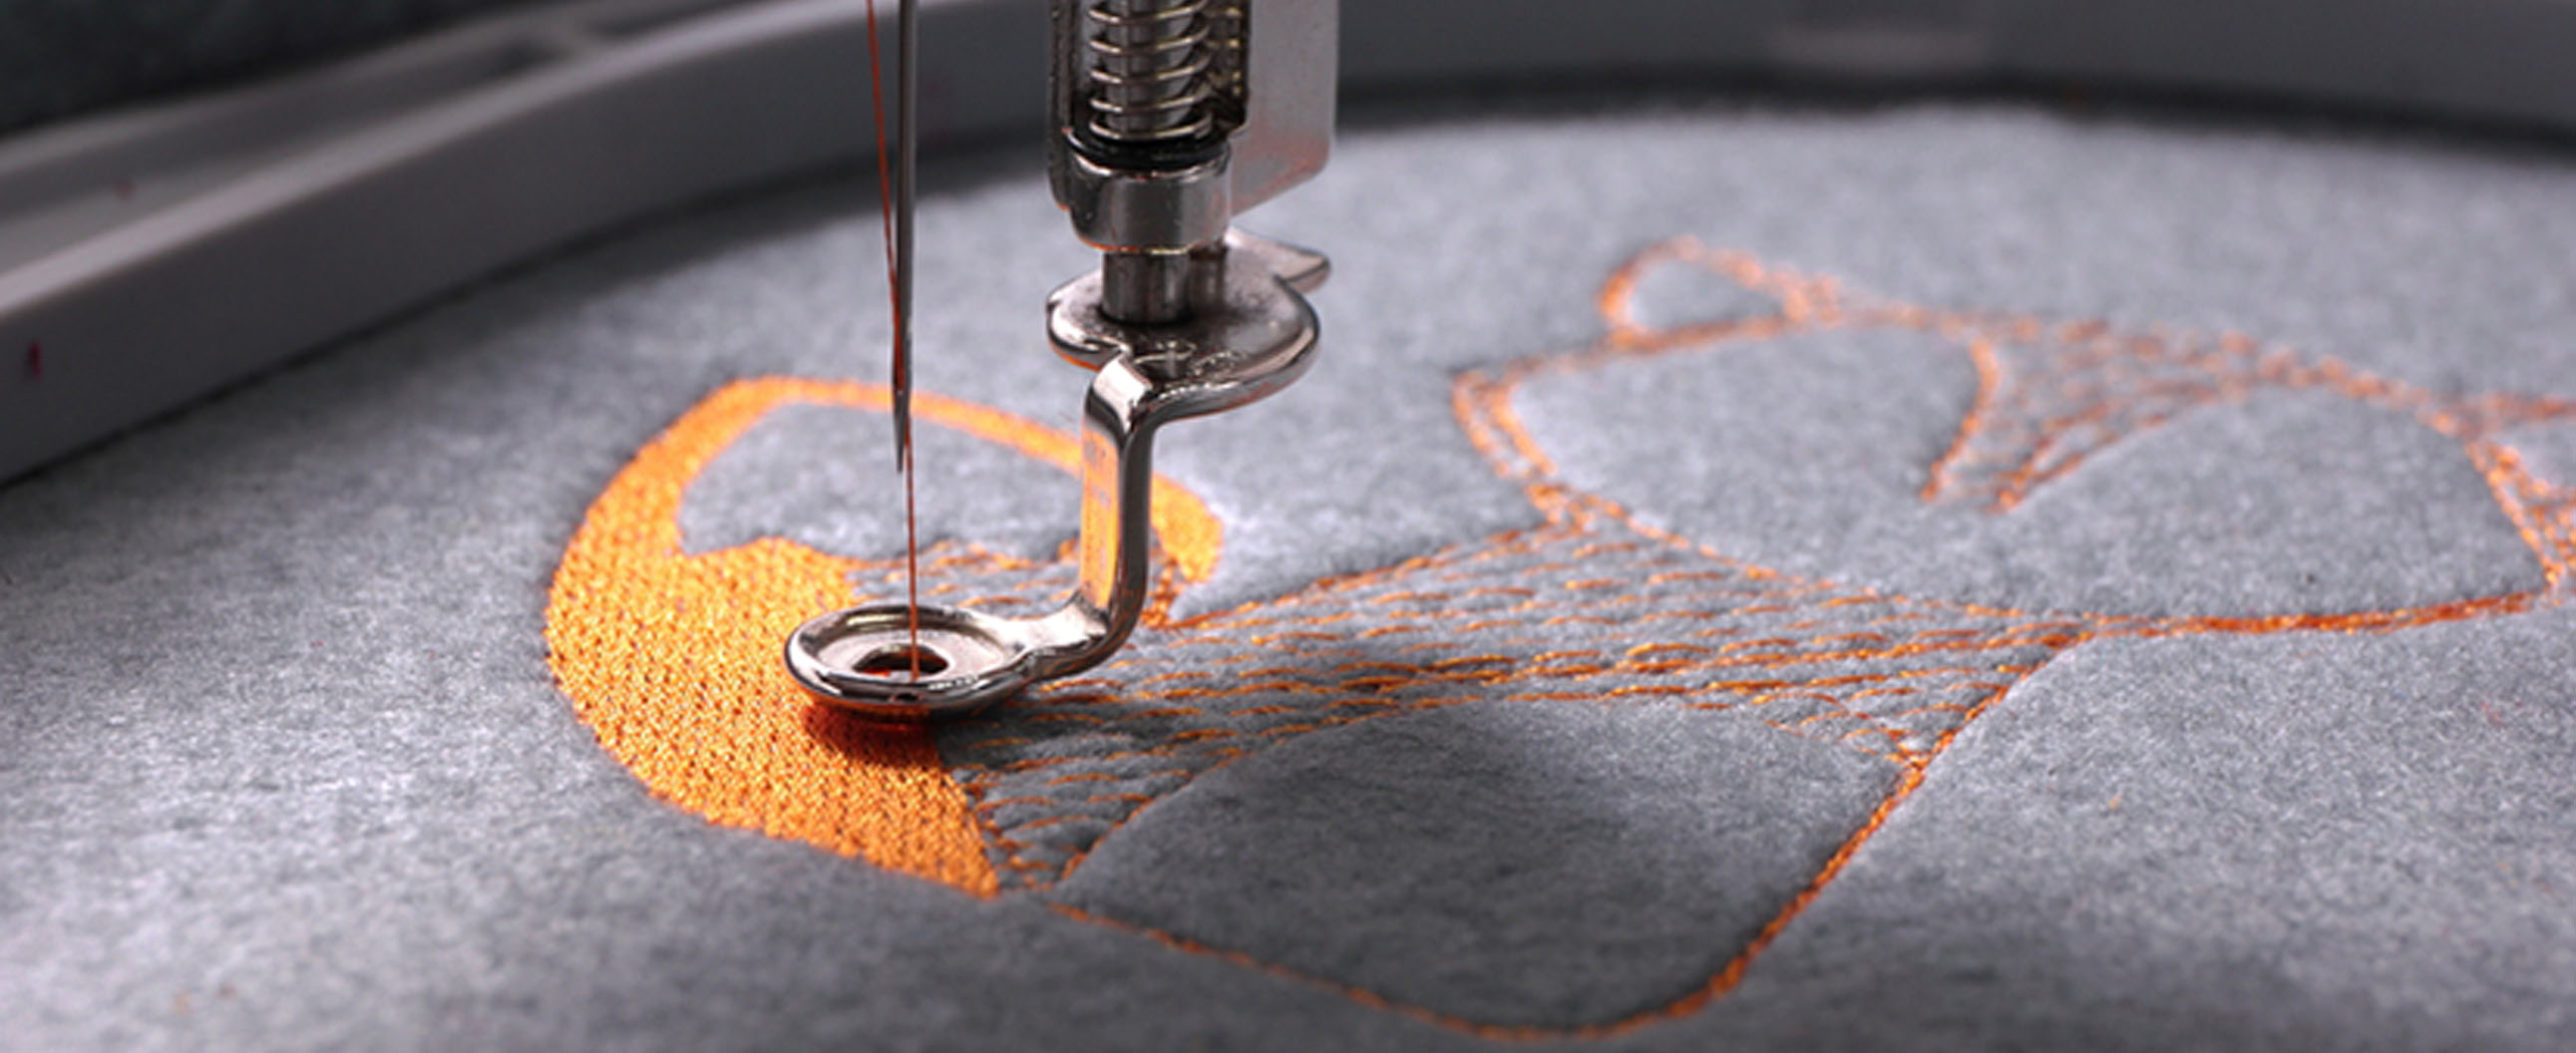 Syracuse Screen Printing offers embroidery services in Syracuse NY